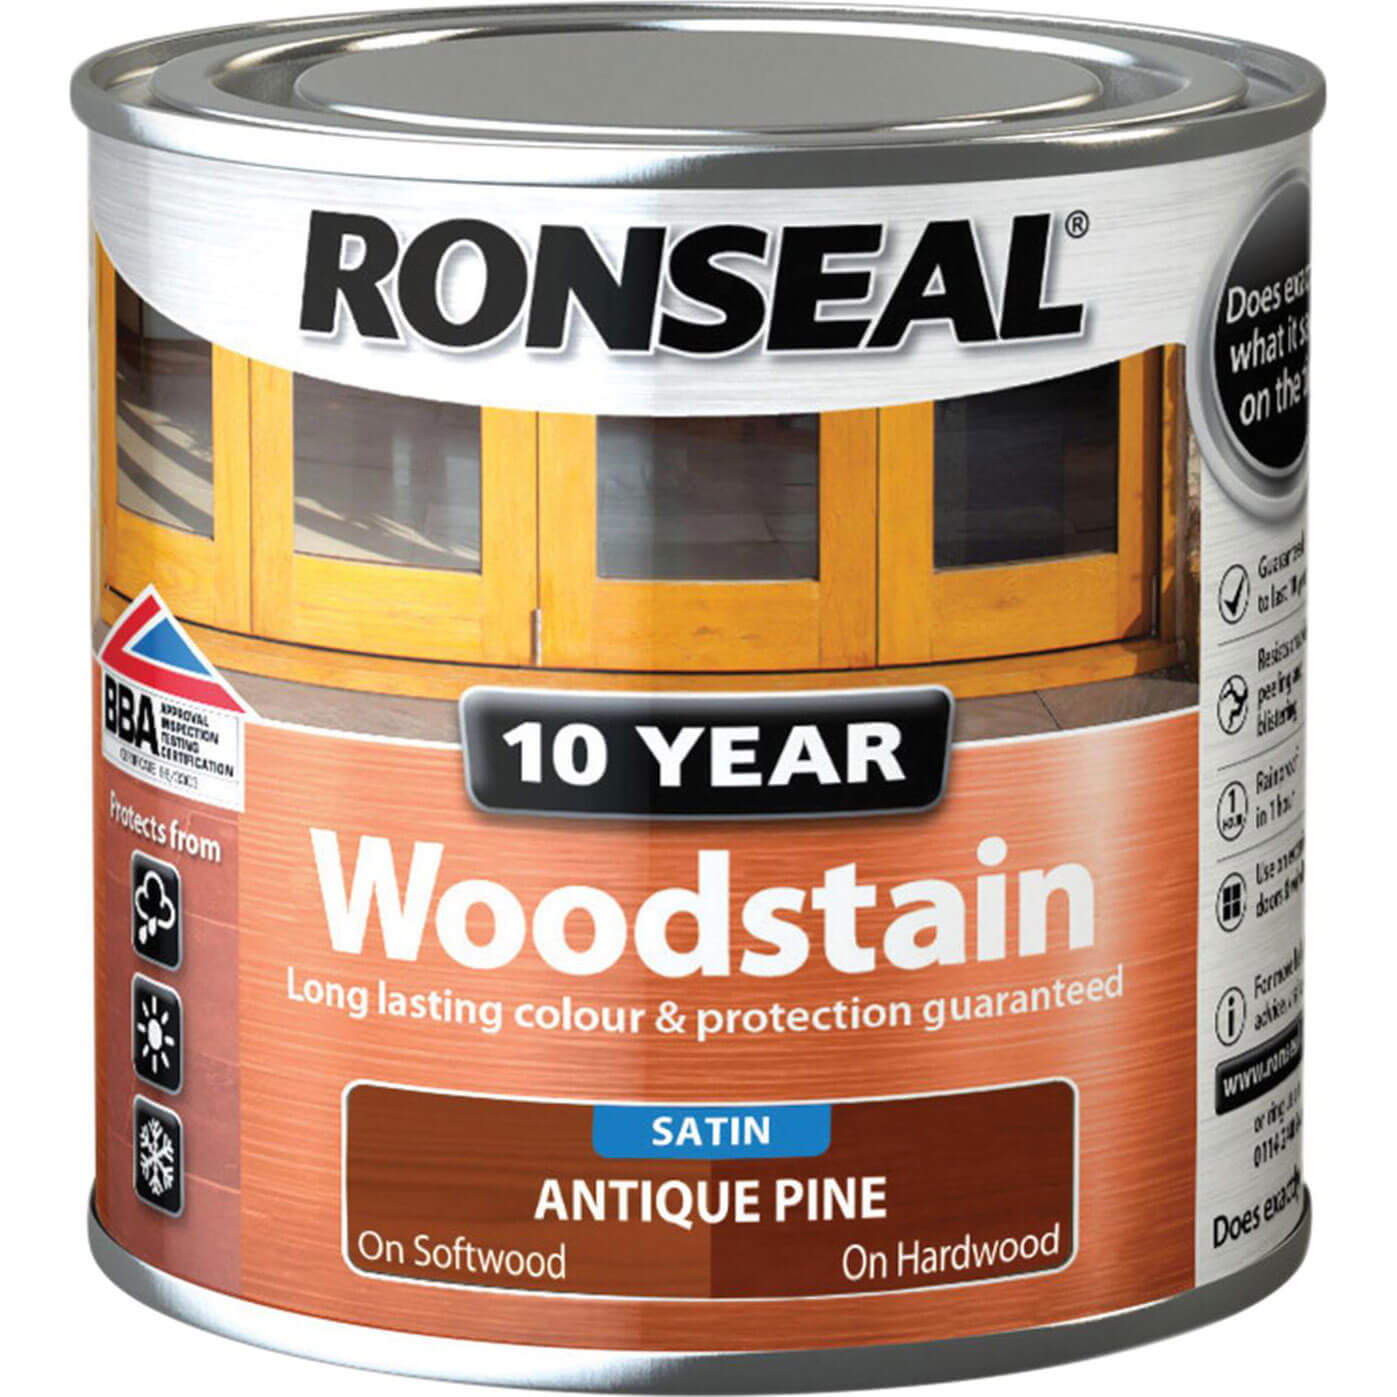 Image of Ronseal 10 Year Wood Stain Antique Pine 250ml